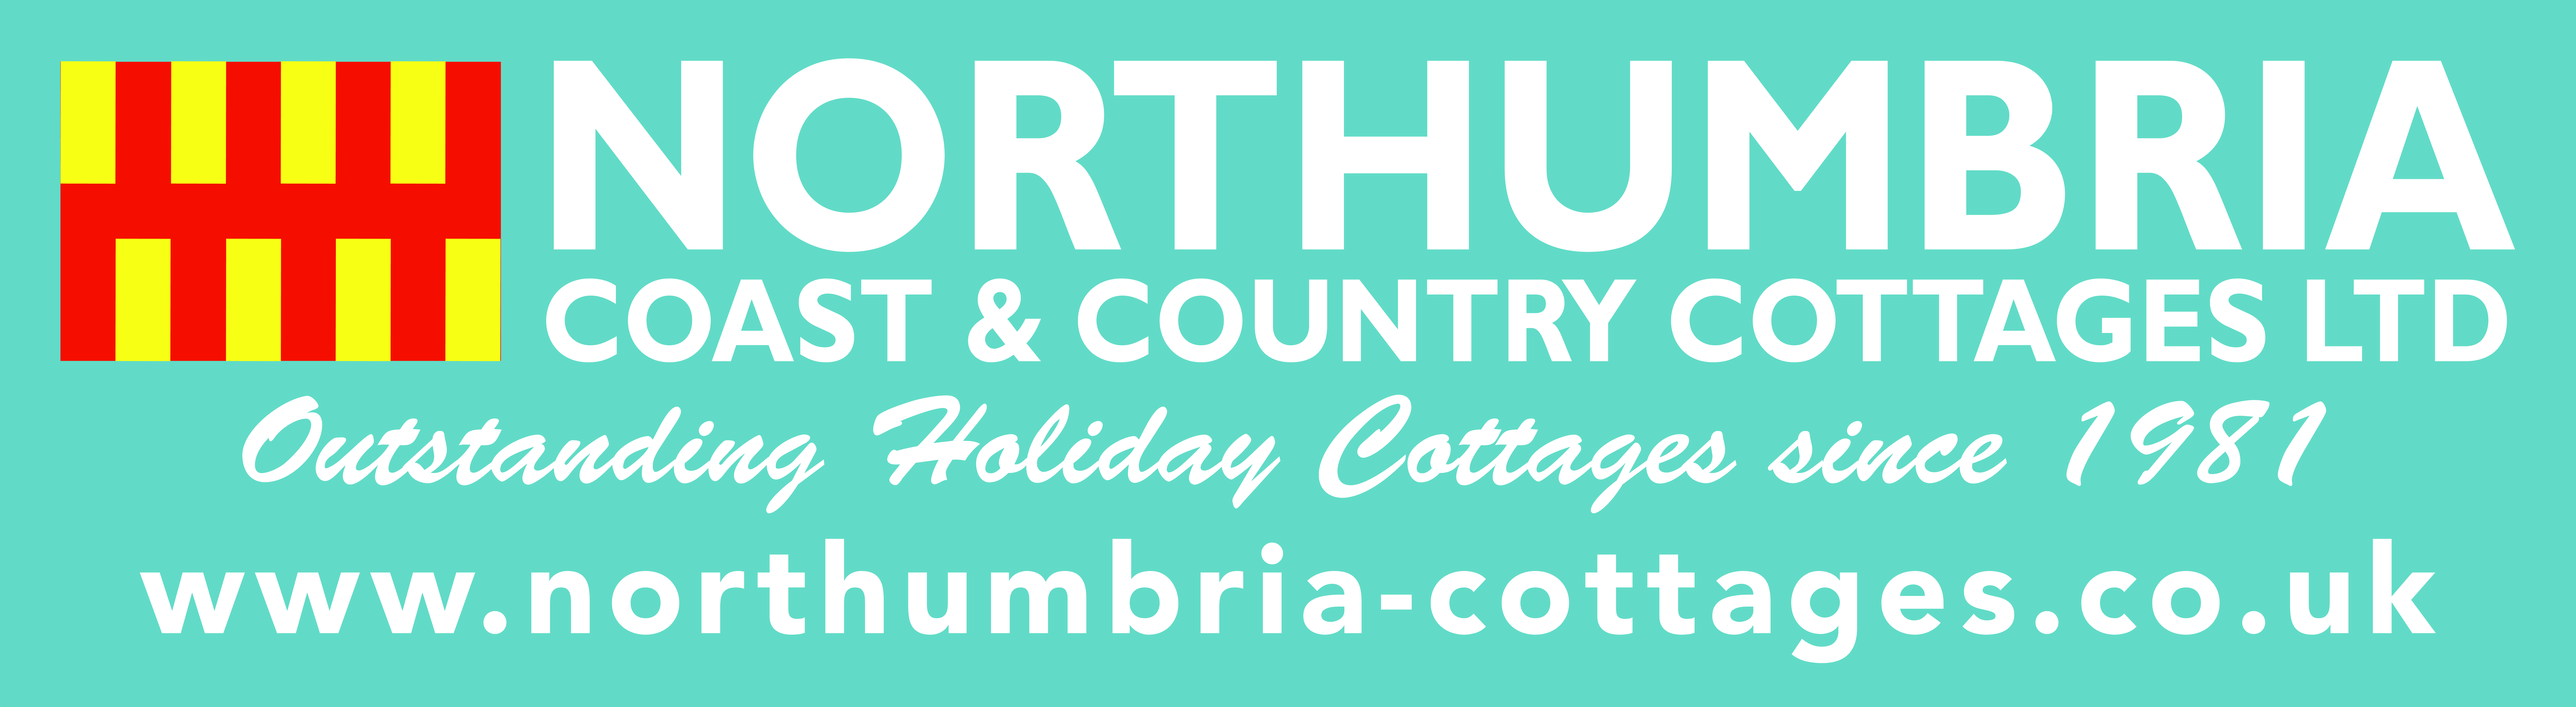 Terrific Northumbria Coast Country Cottages Welcome To Seahouses Download Free Architecture Designs Scobabritishbridgeorg